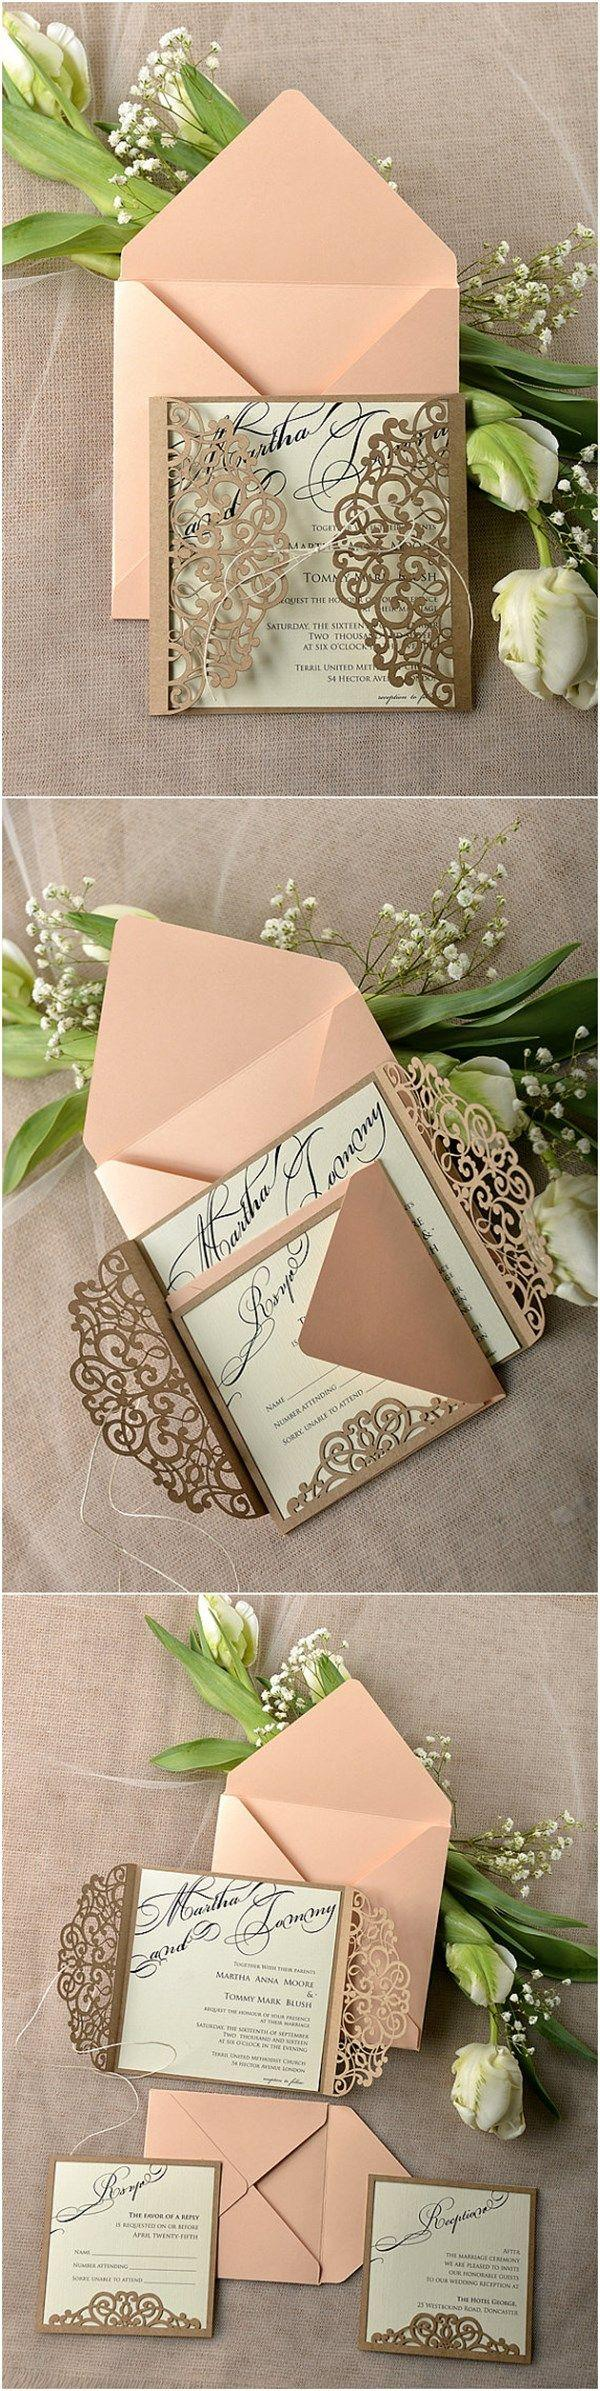 زفاف - Eco Peach Rustic Laser Cut Wedding Invitation Cards